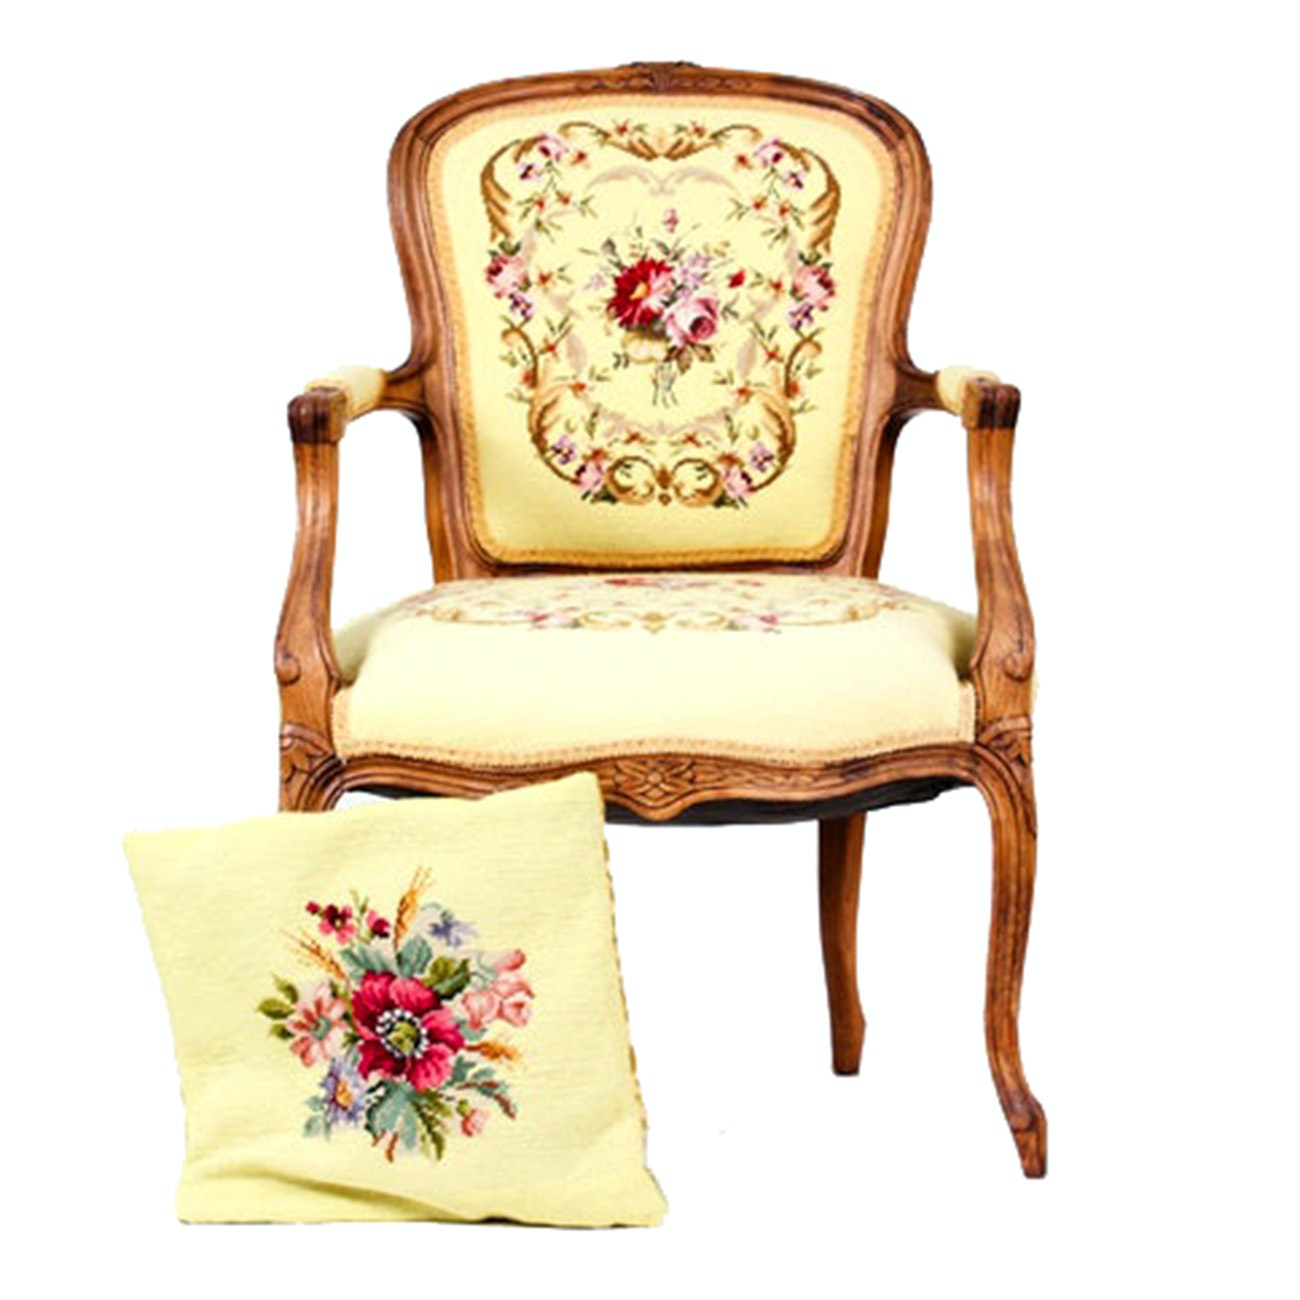 Louis XV Style Upholstered Needlepoint Armchair